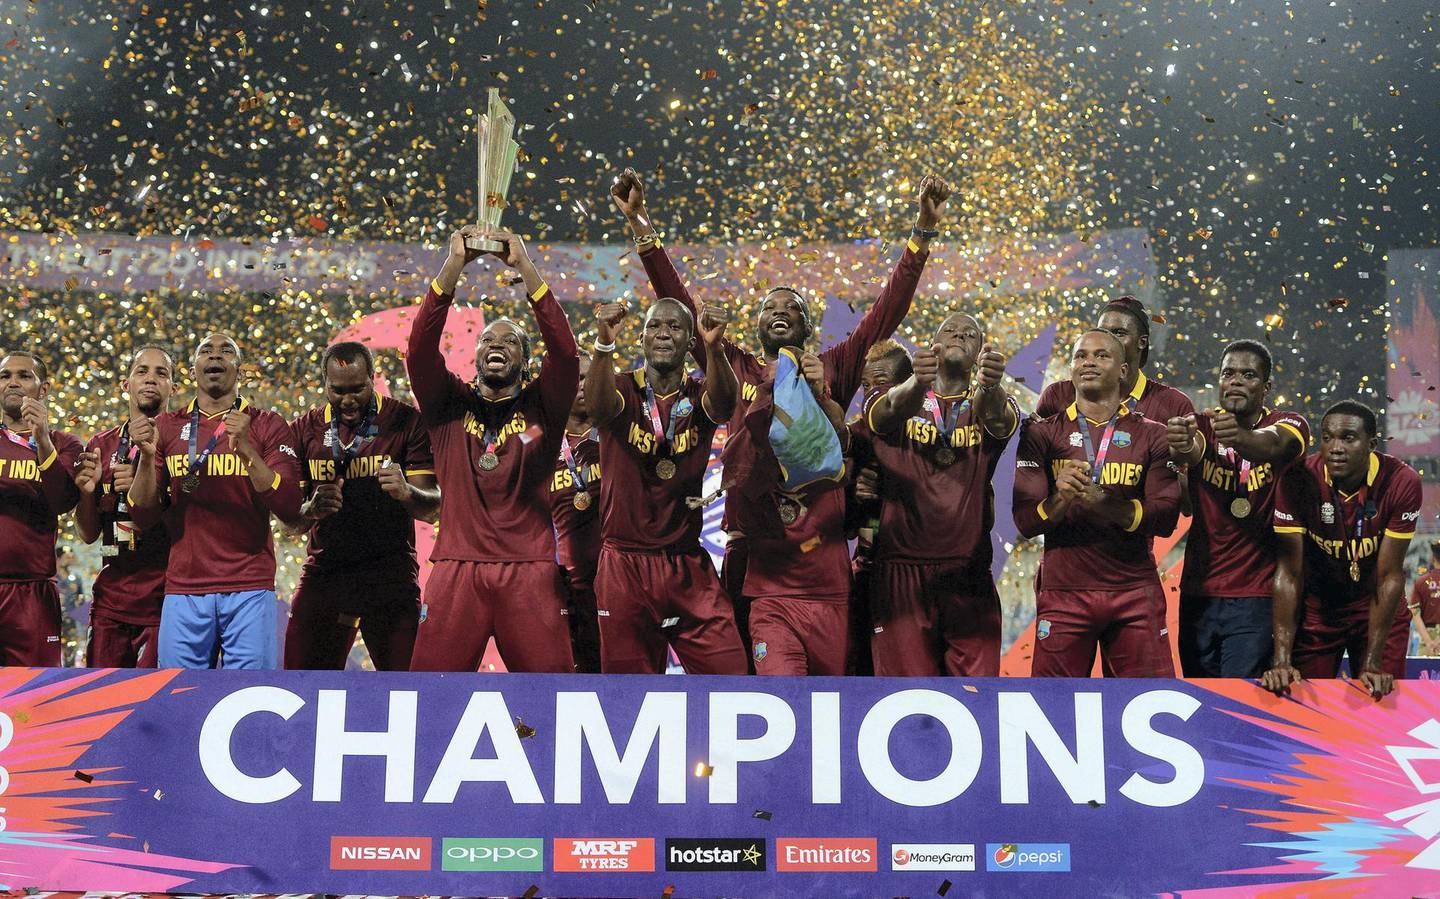 KOLKATA, WEST BENGAL - APRIL 03:  The West Indies lift the ICC World T20 trophy after winning the ICC World Twenty20 India 2016 Final between England and the West Indies at Eden Gardens on April 3, 2016 in Kolkata, India.  (Photo by Gareth Copley/Getty Images)